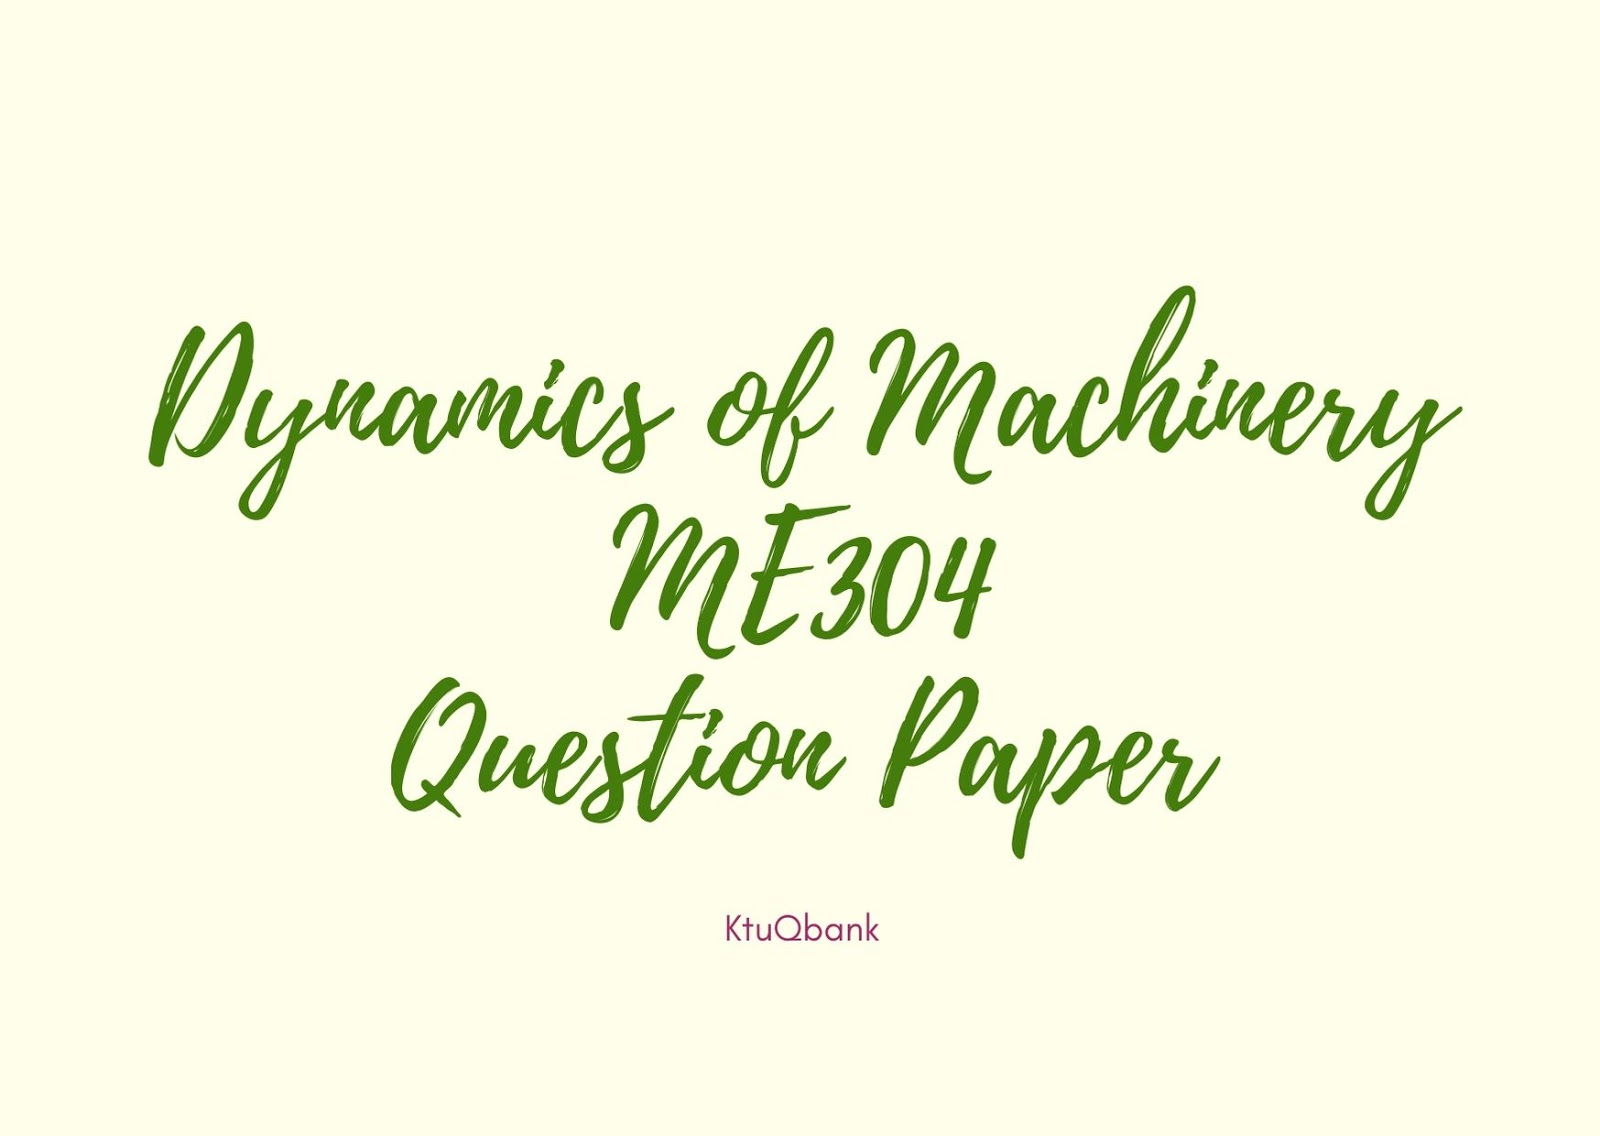 Dynamics of Machinery | ME304 | Question Papers (2015 batch)